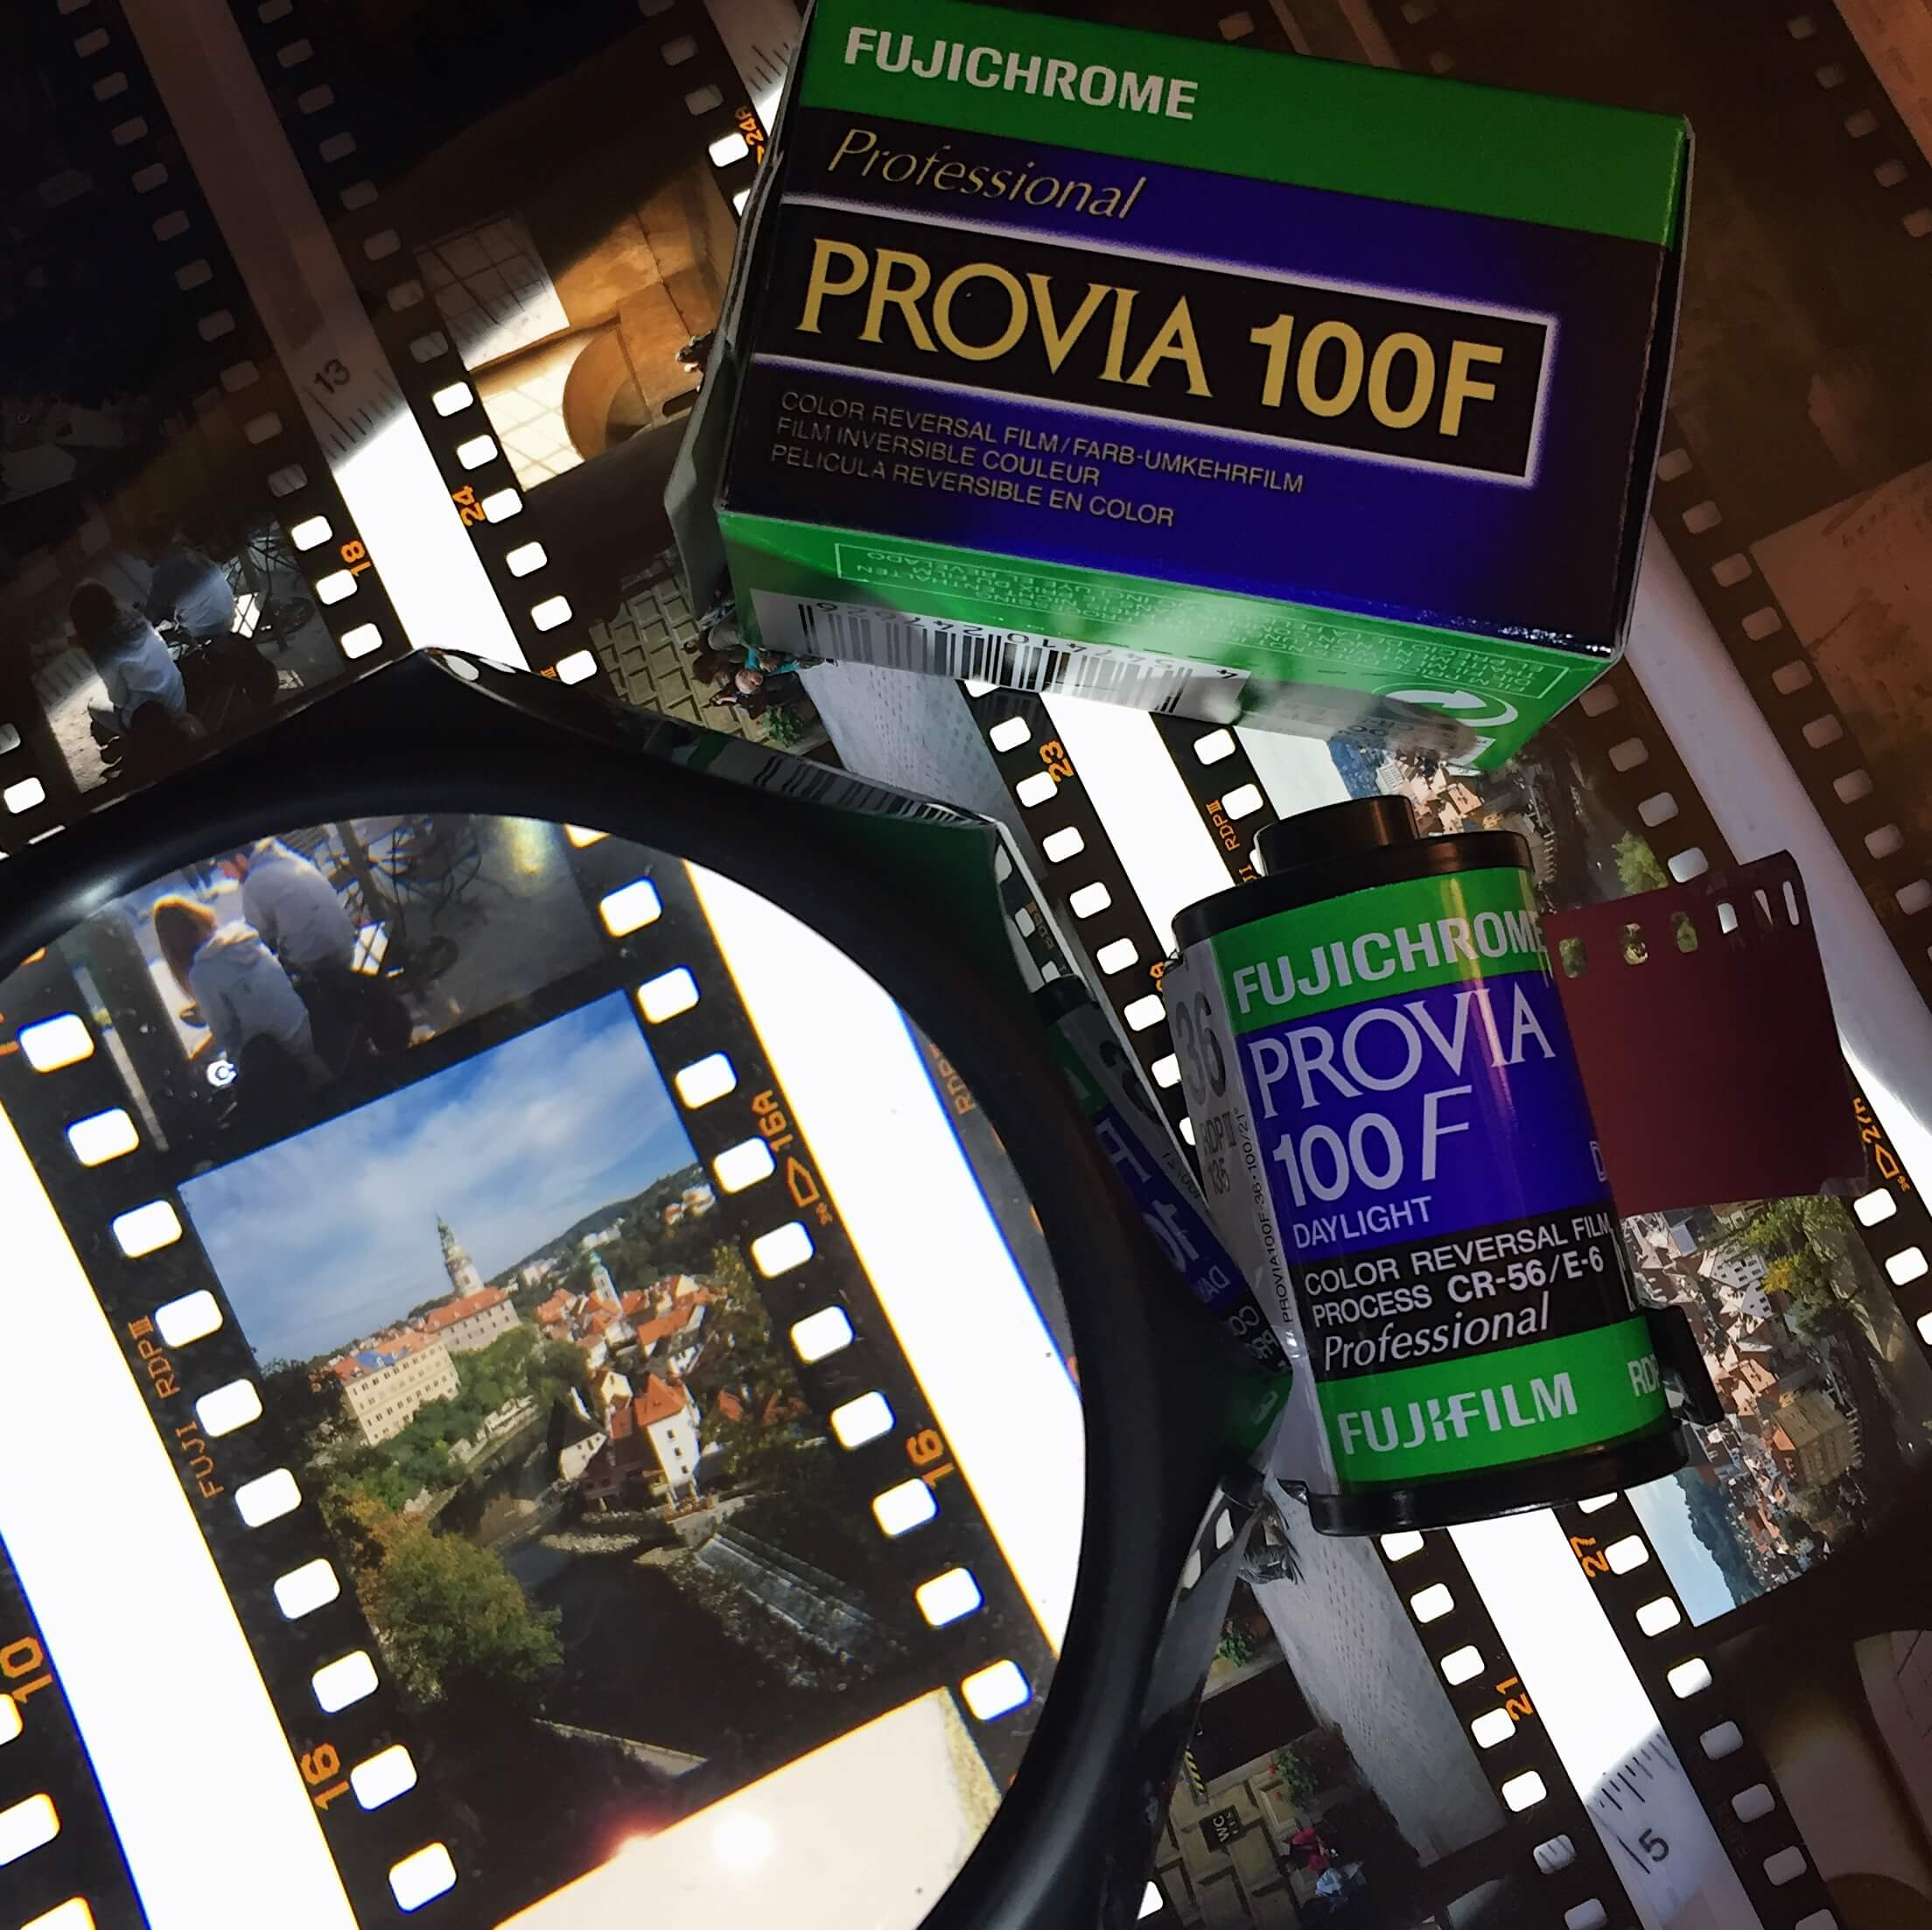 Fujifilm, fuji, fujichrome, provia, 100f, velvia, RDP100, RVPIII, RDPIII, iso 100, slide, positive film, beginner, projector, colour correction, 135 film, 35mm, colour